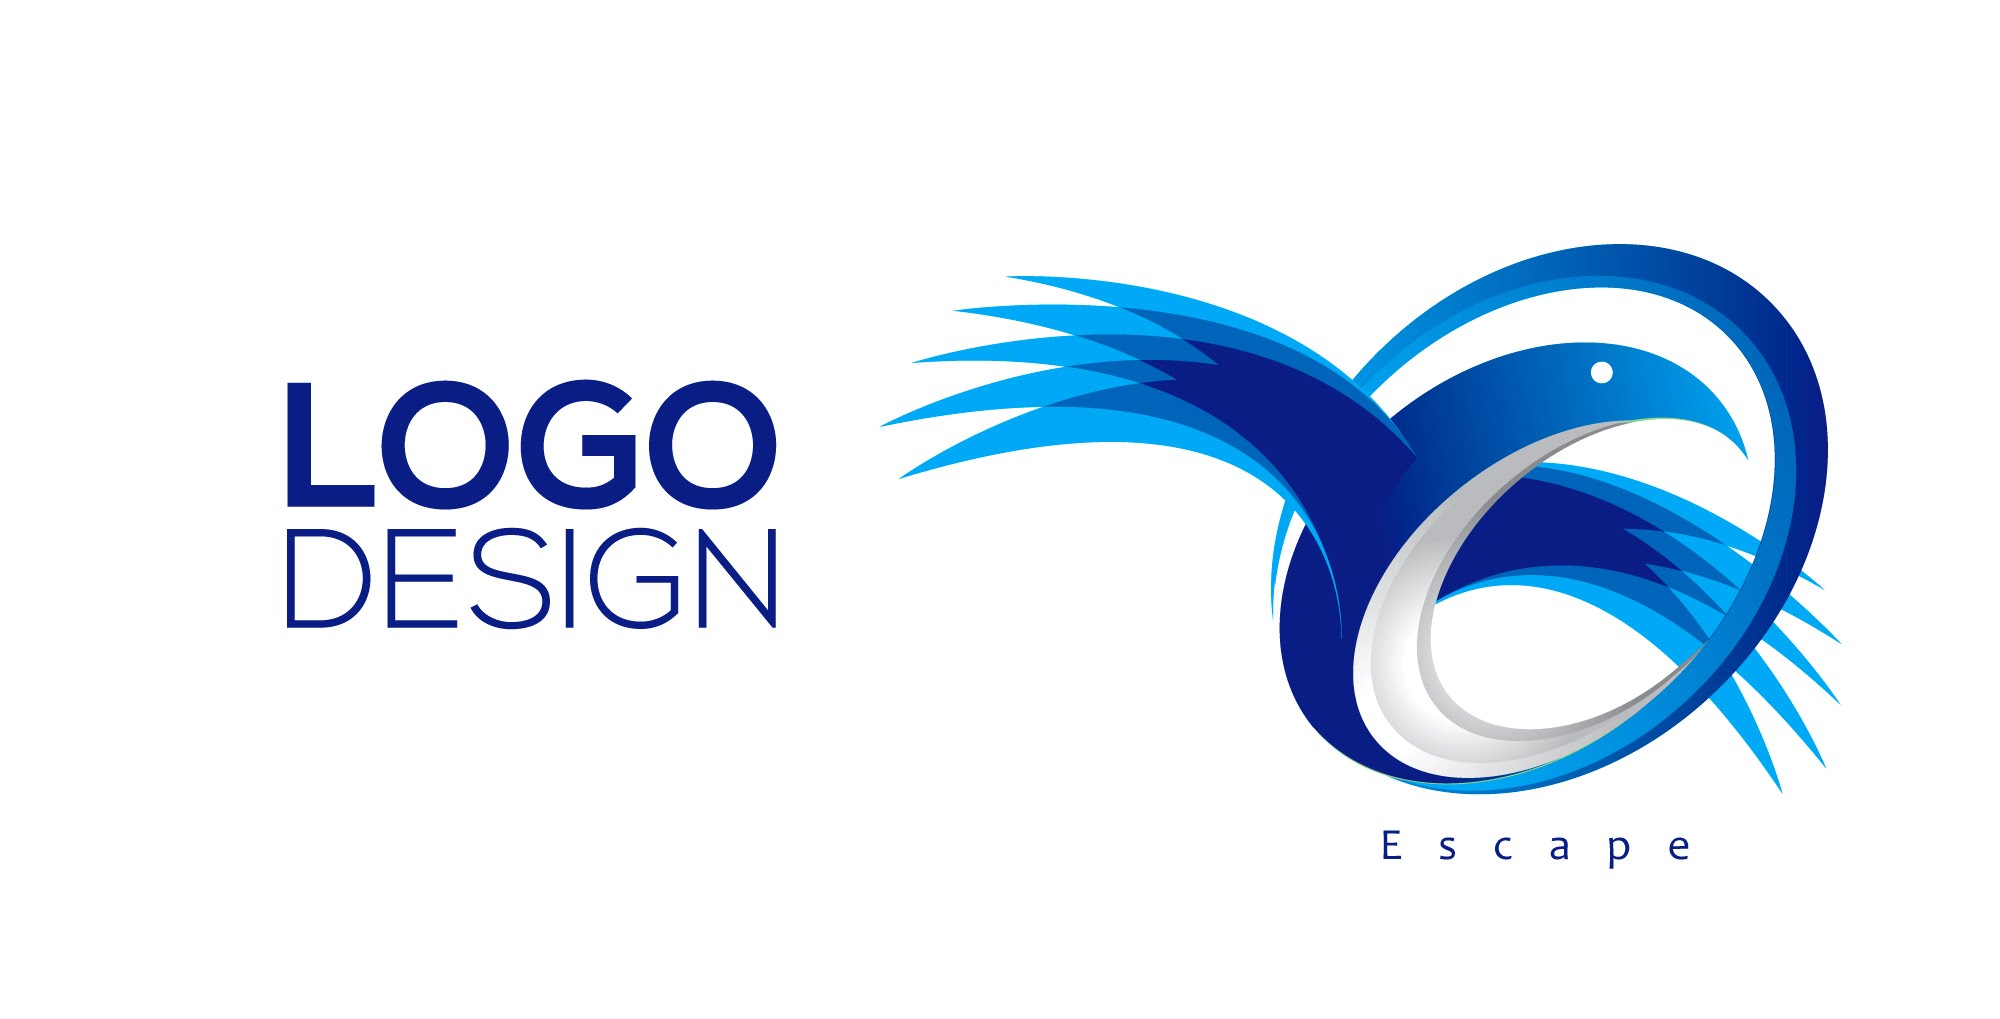 design simple logo for website or youtube channel